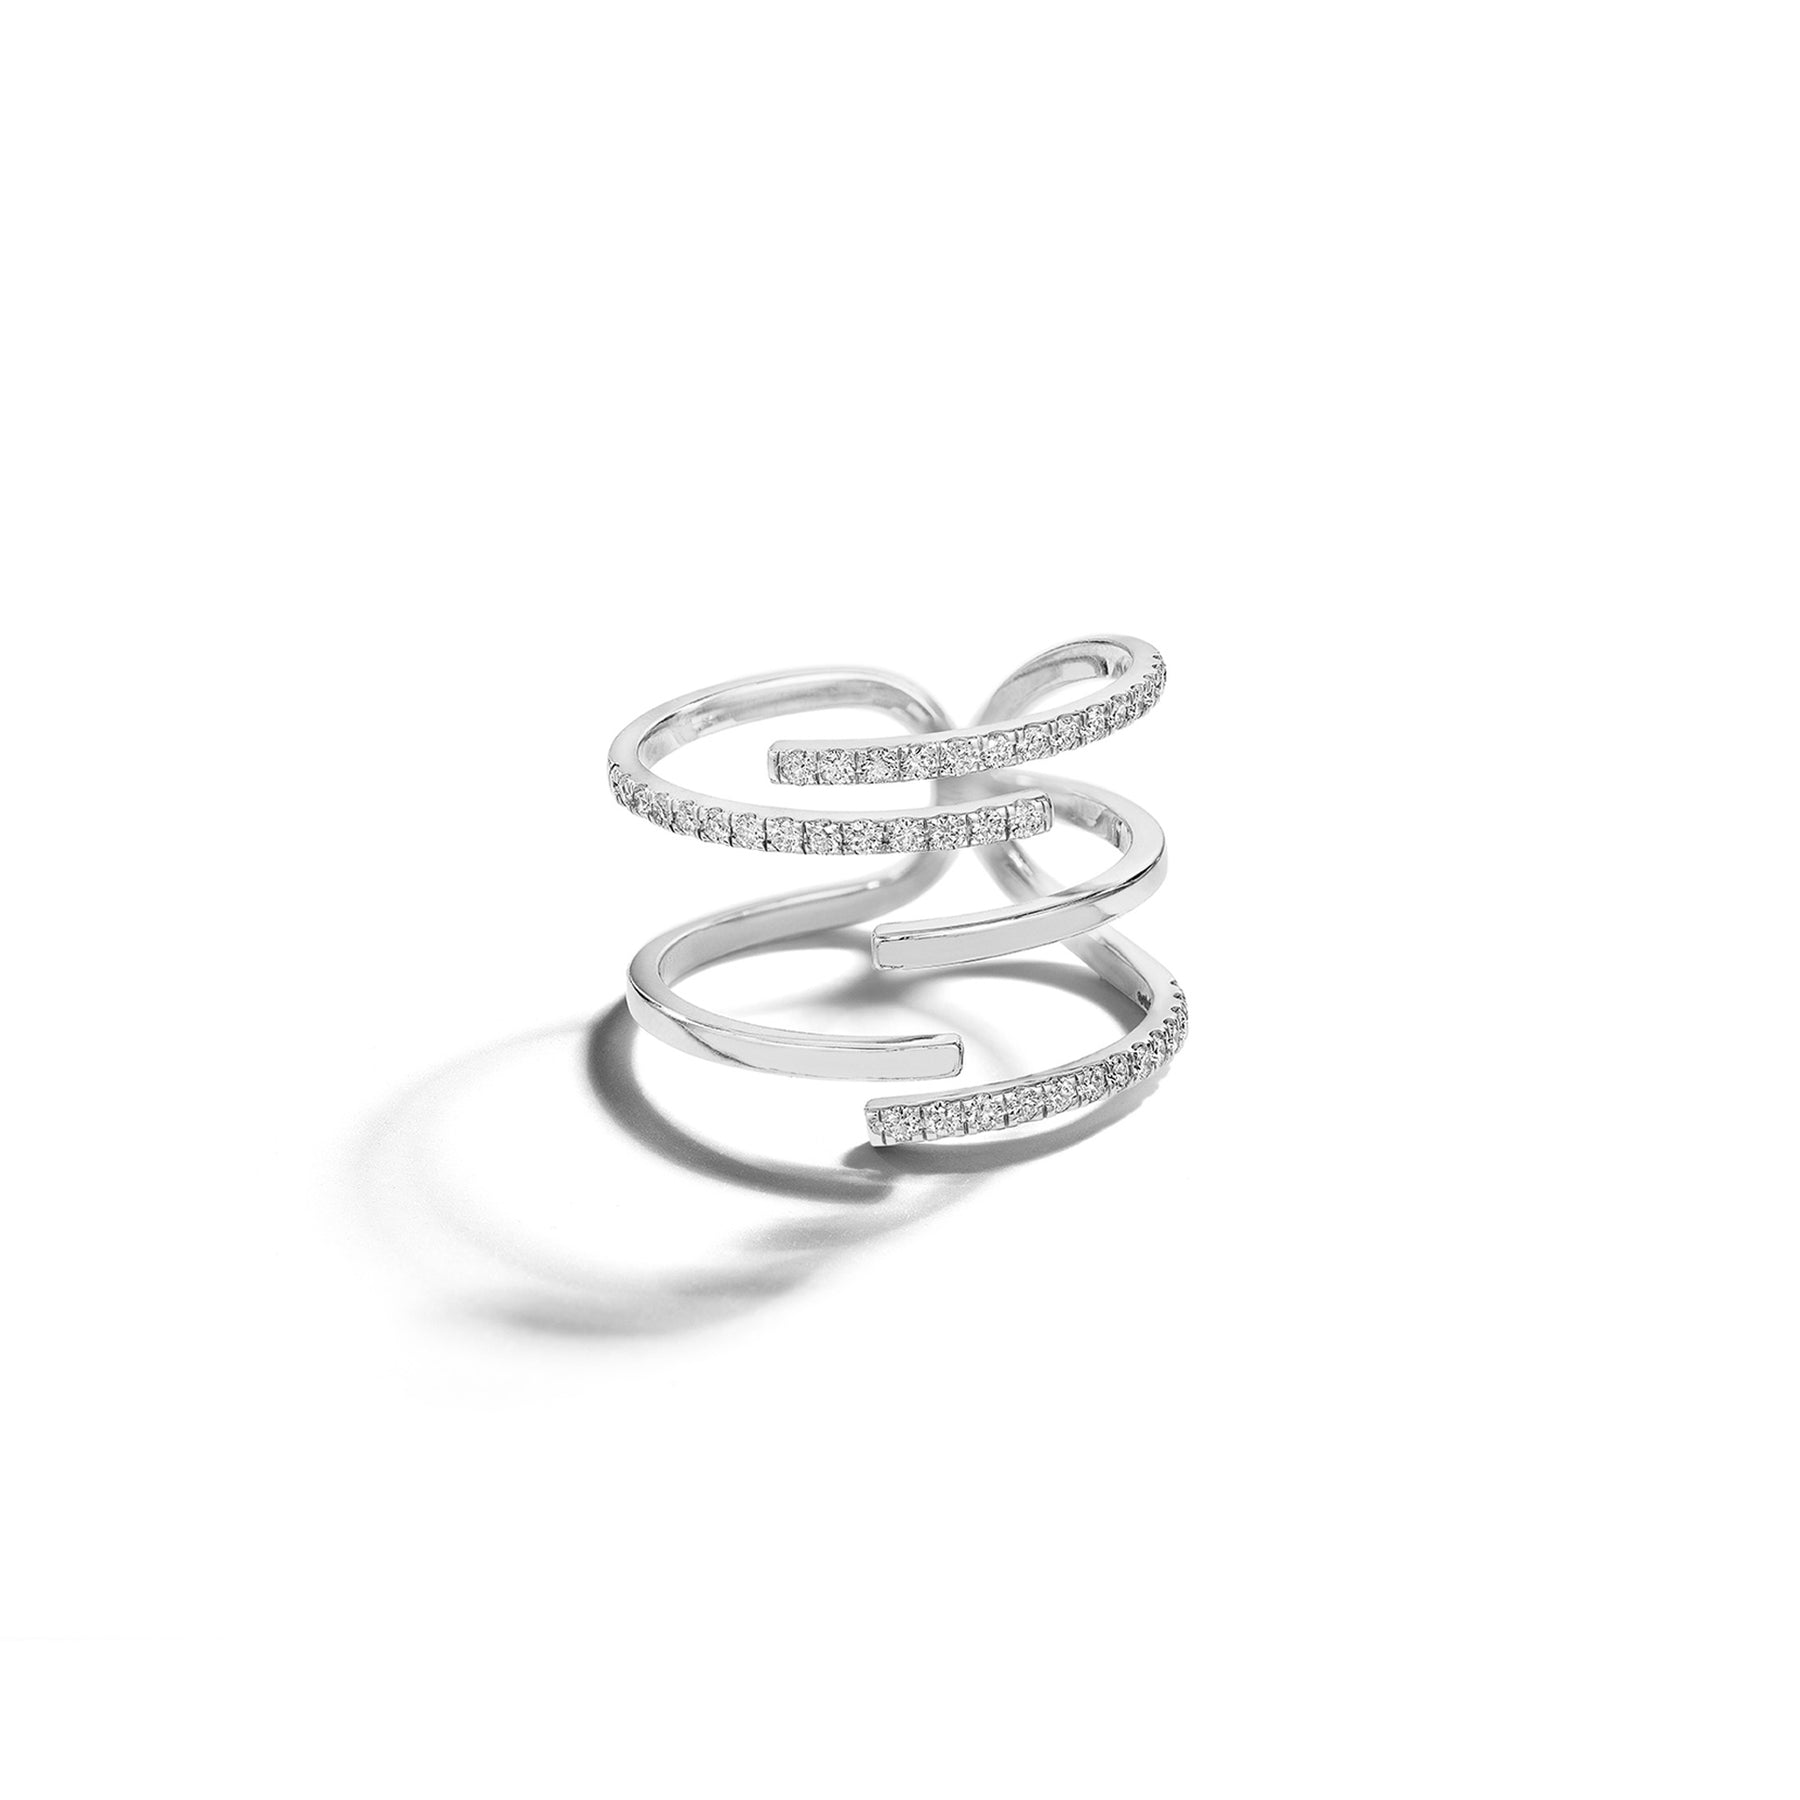 Mimi So Piece Stick Pave Diamond Ring_18k White Gold